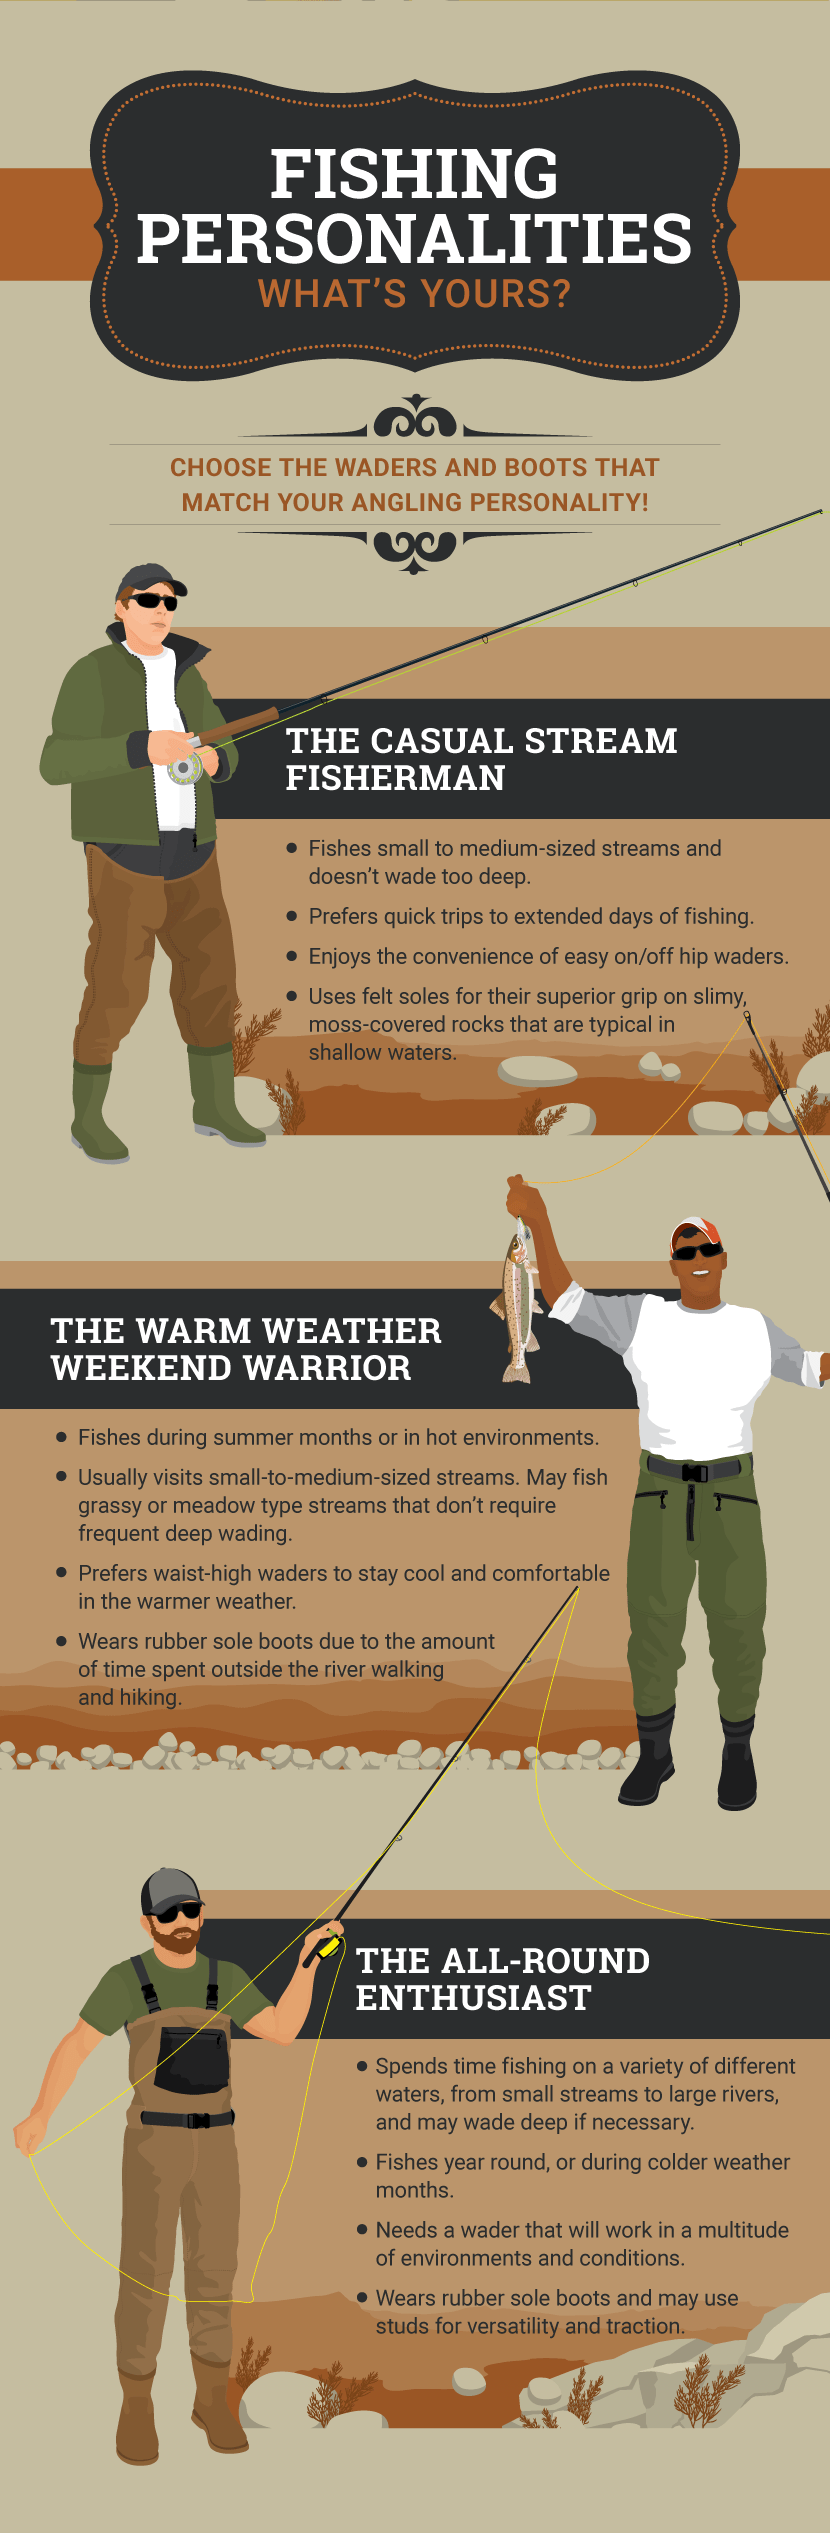 Fishing Personality - A Guide to Choosing the Right Fishing Waders